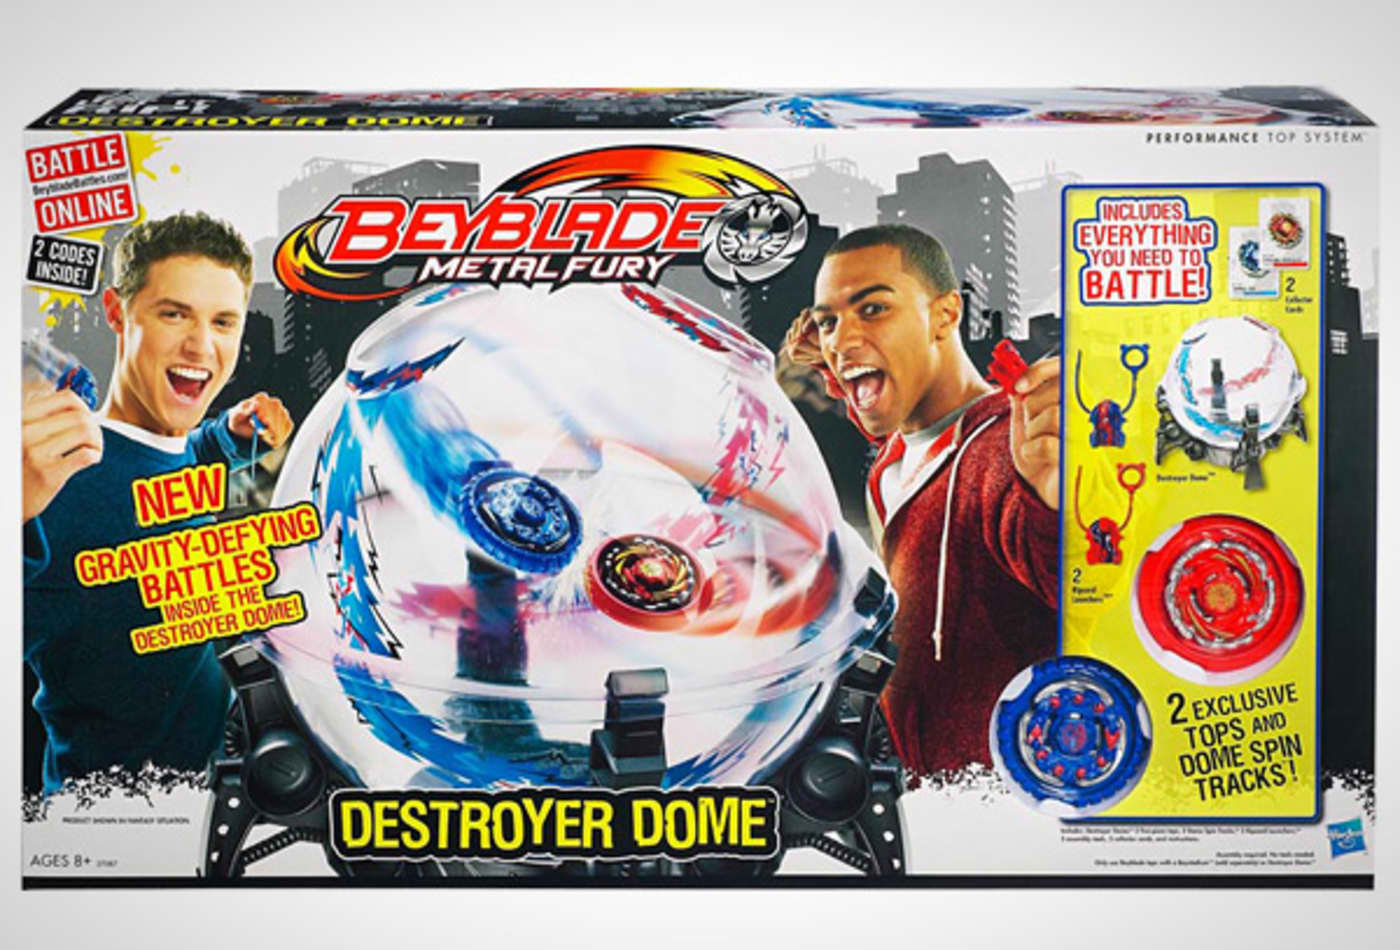 hot-toys-2012-beyblades-destroyer-dome.jpg